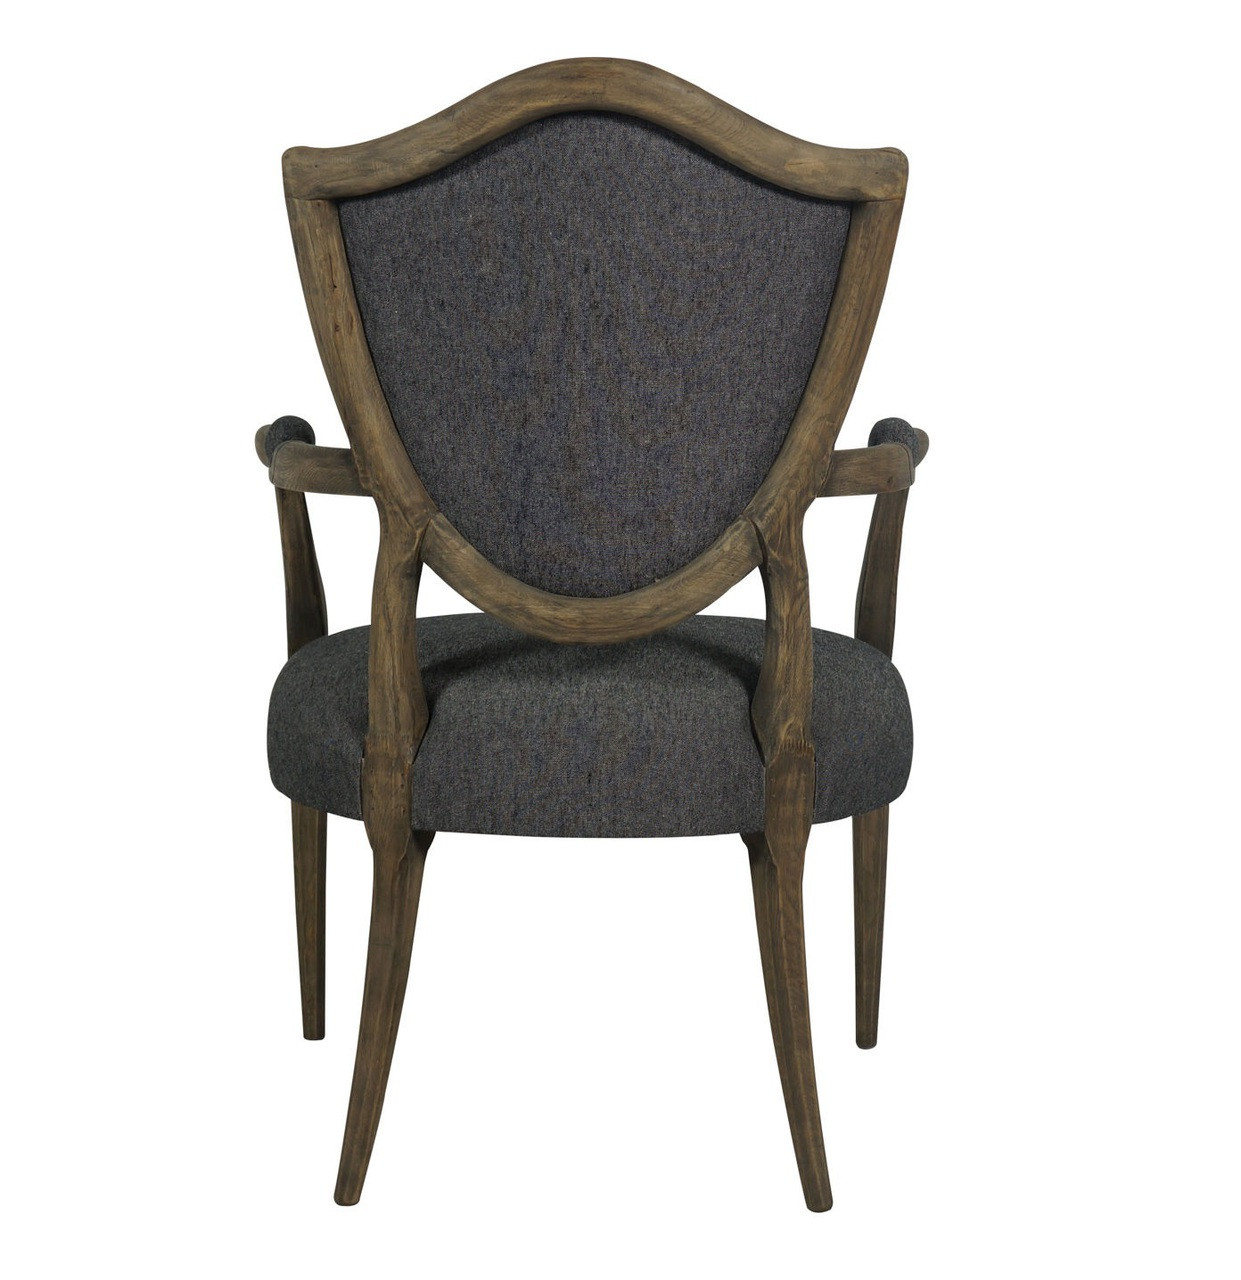 bergere dining chairs folding floor chair target lenny weathered oak french zin home